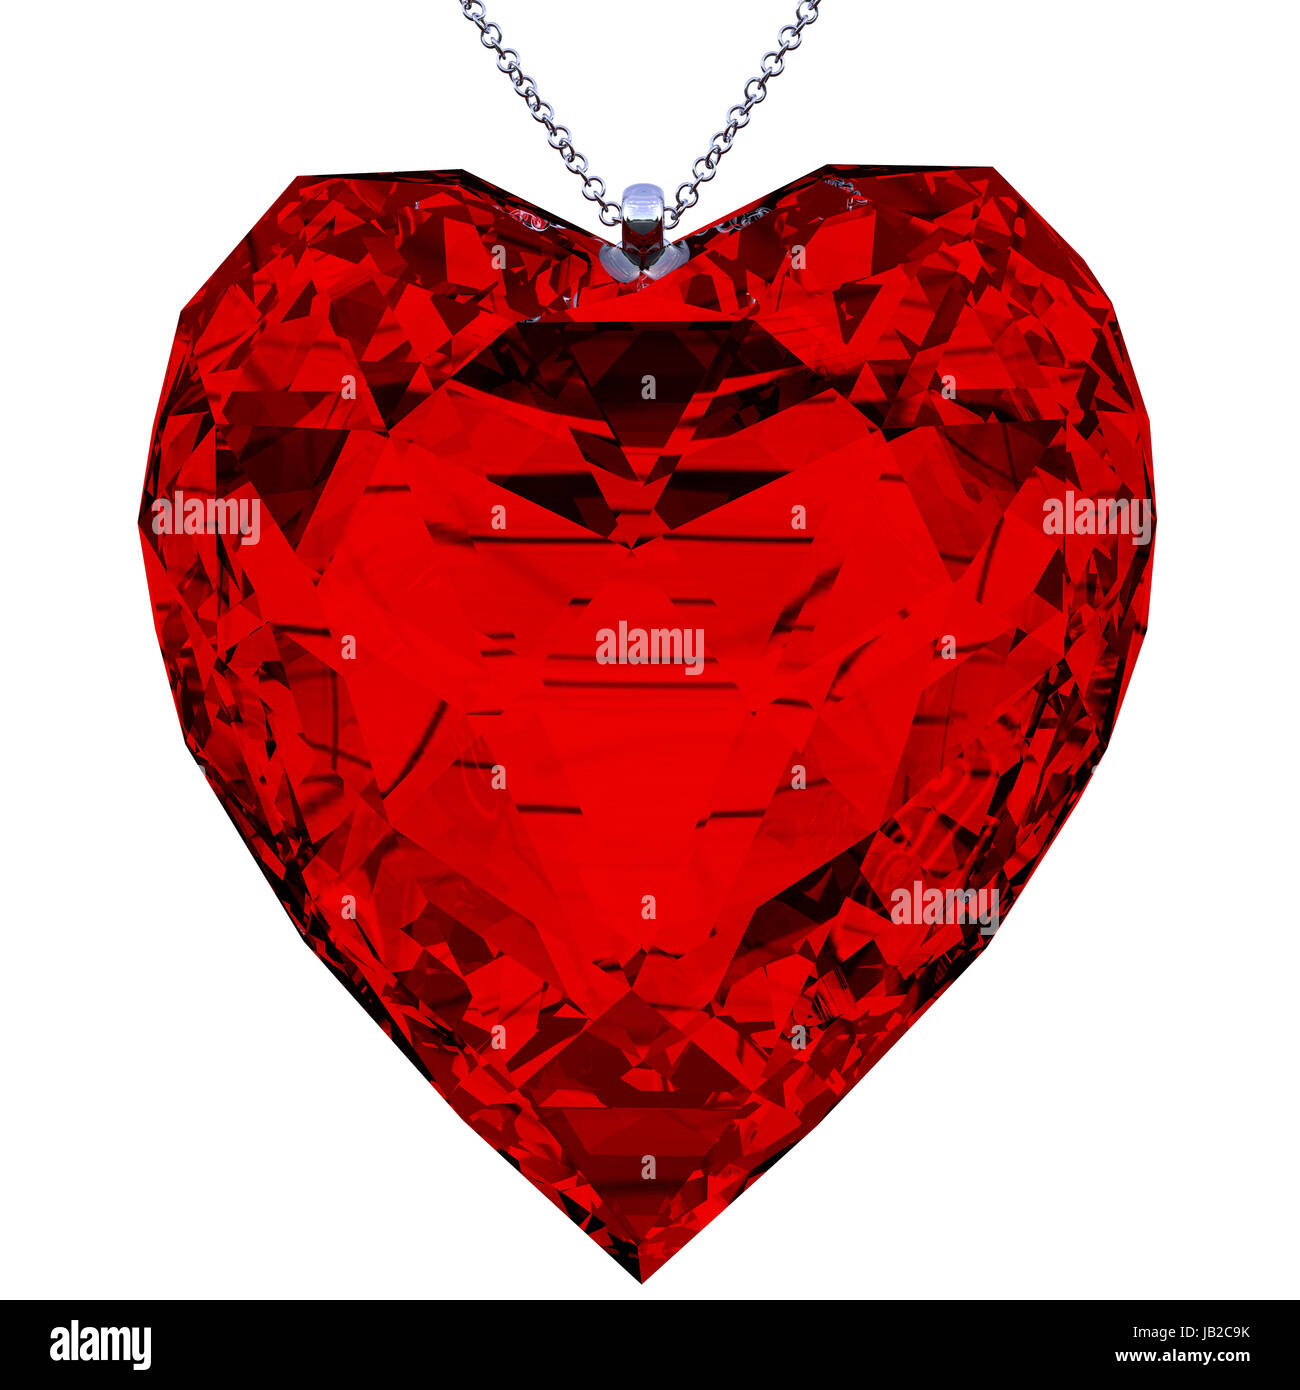 pendant in the shape of red heart made in 3D with clipping path - Stock Image